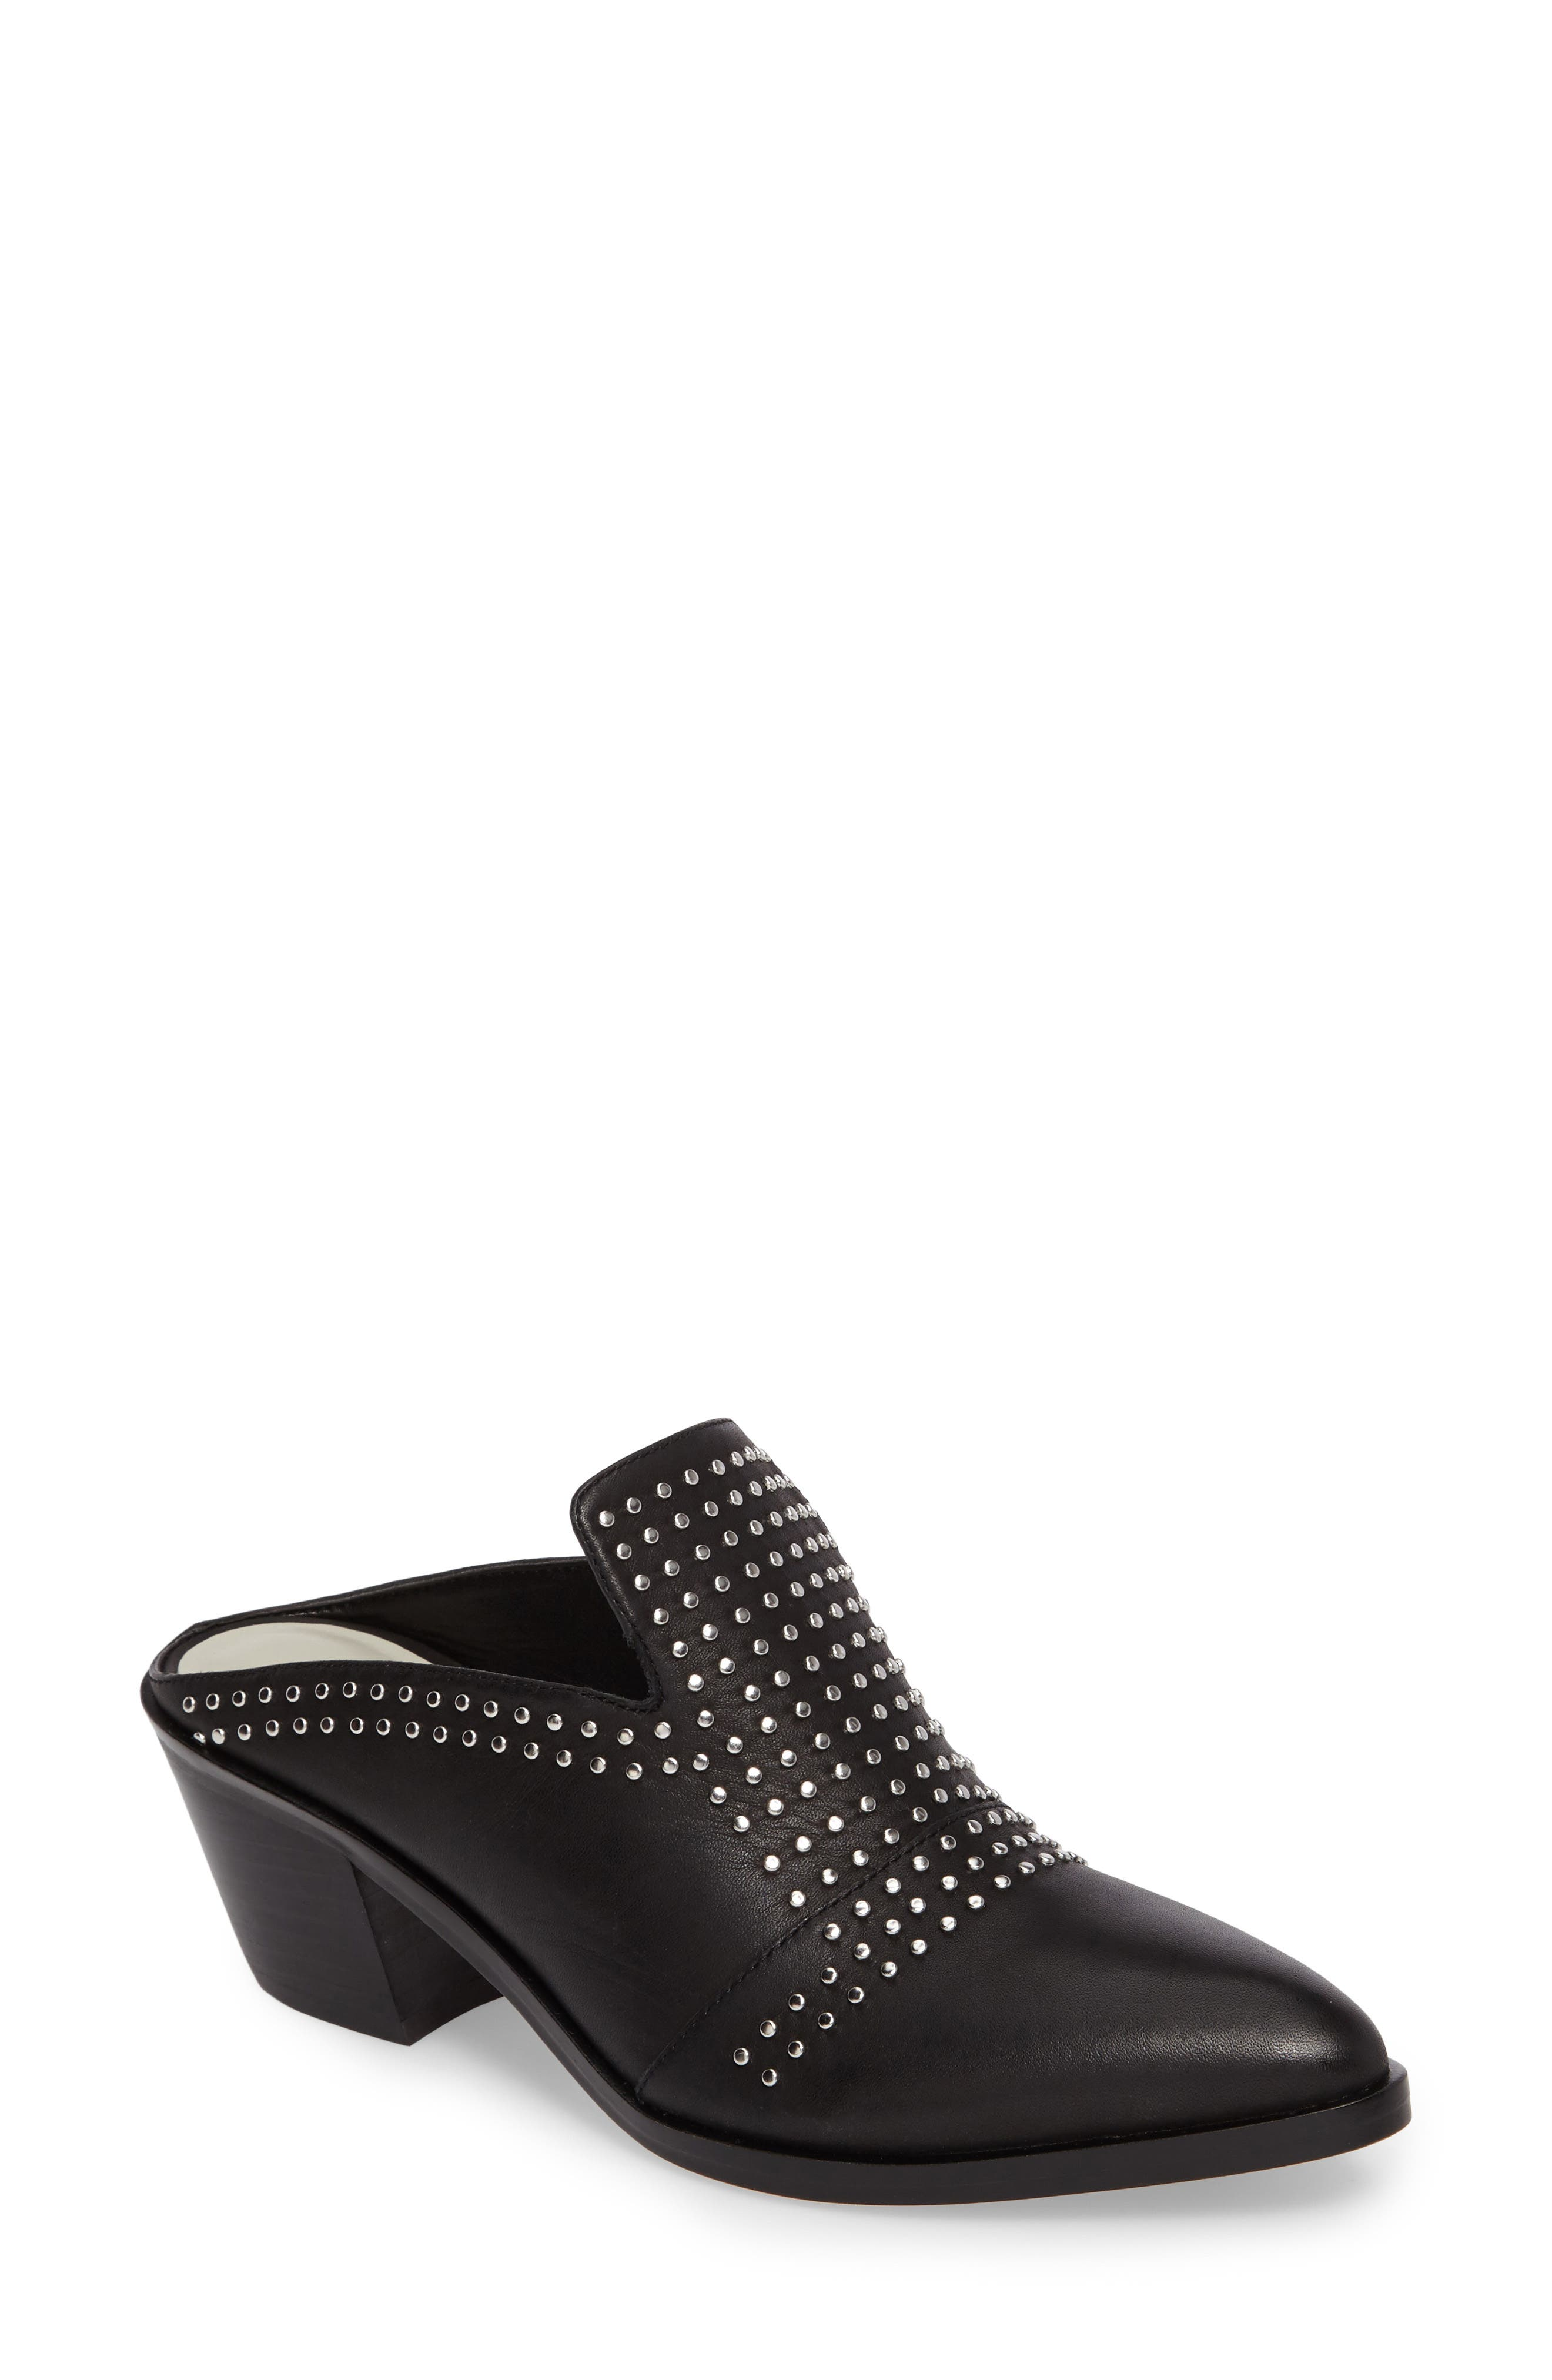 Lon Studded Loafer Mule,                             Main thumbnail 1, color,